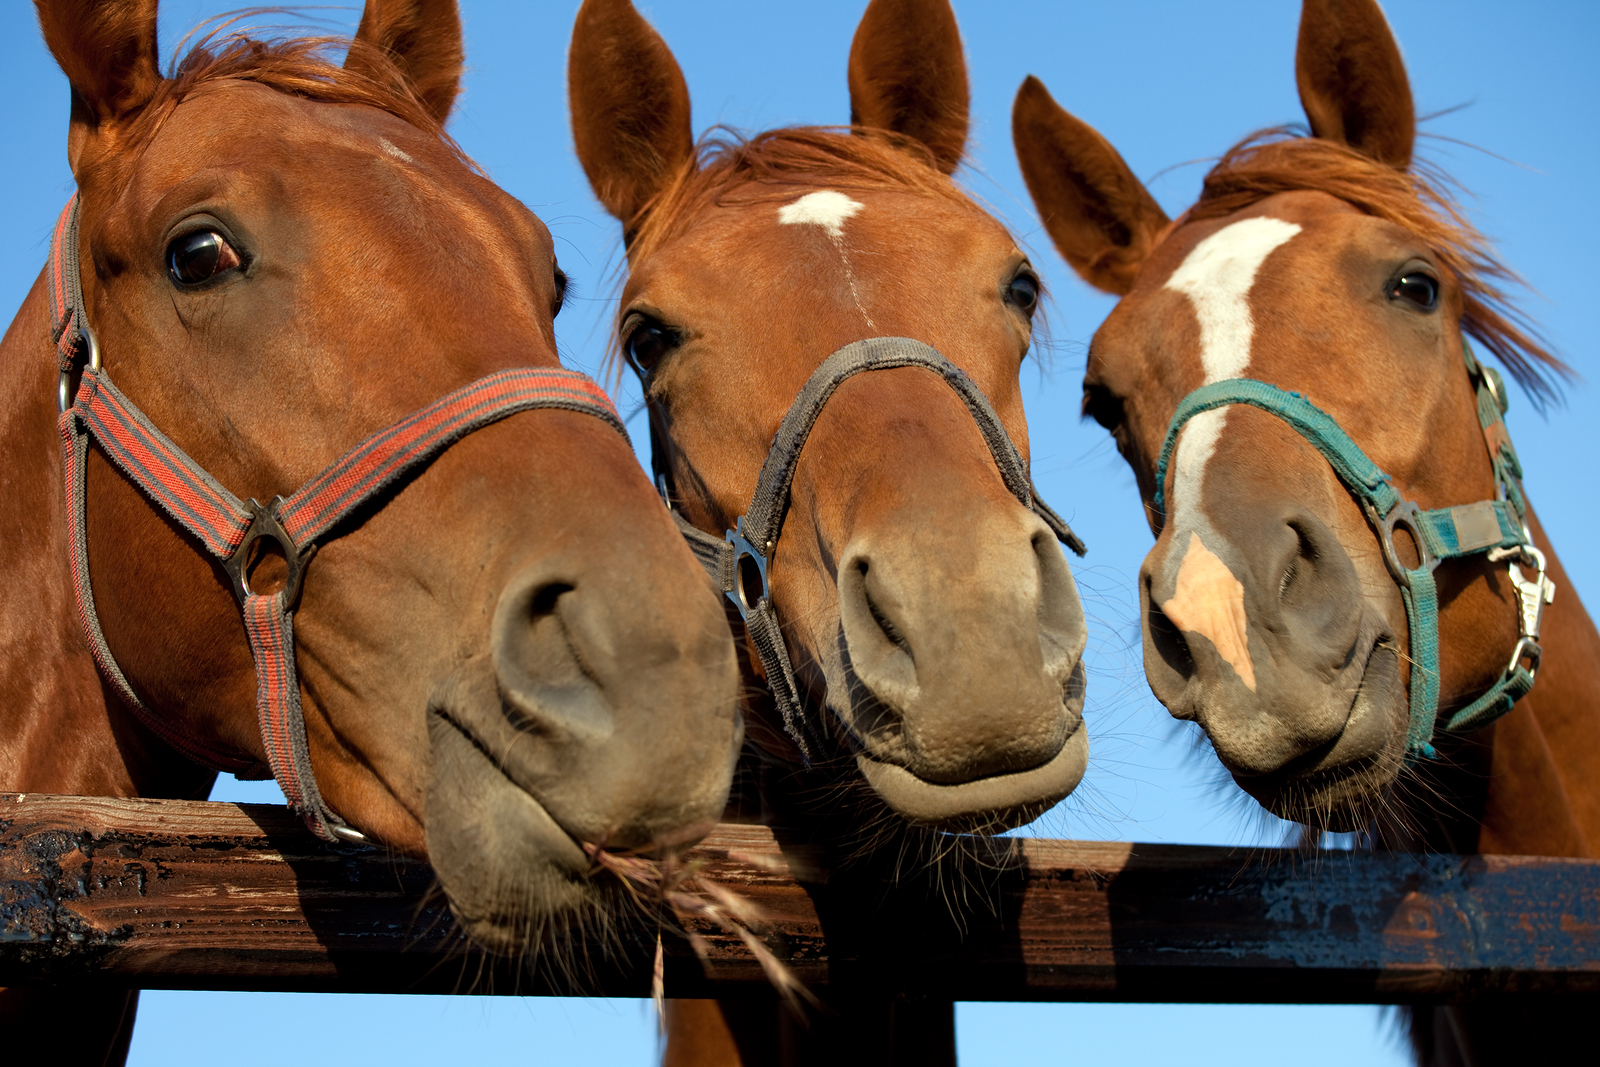 bigstock-three-heads-of-a-horses-31983239.jpg